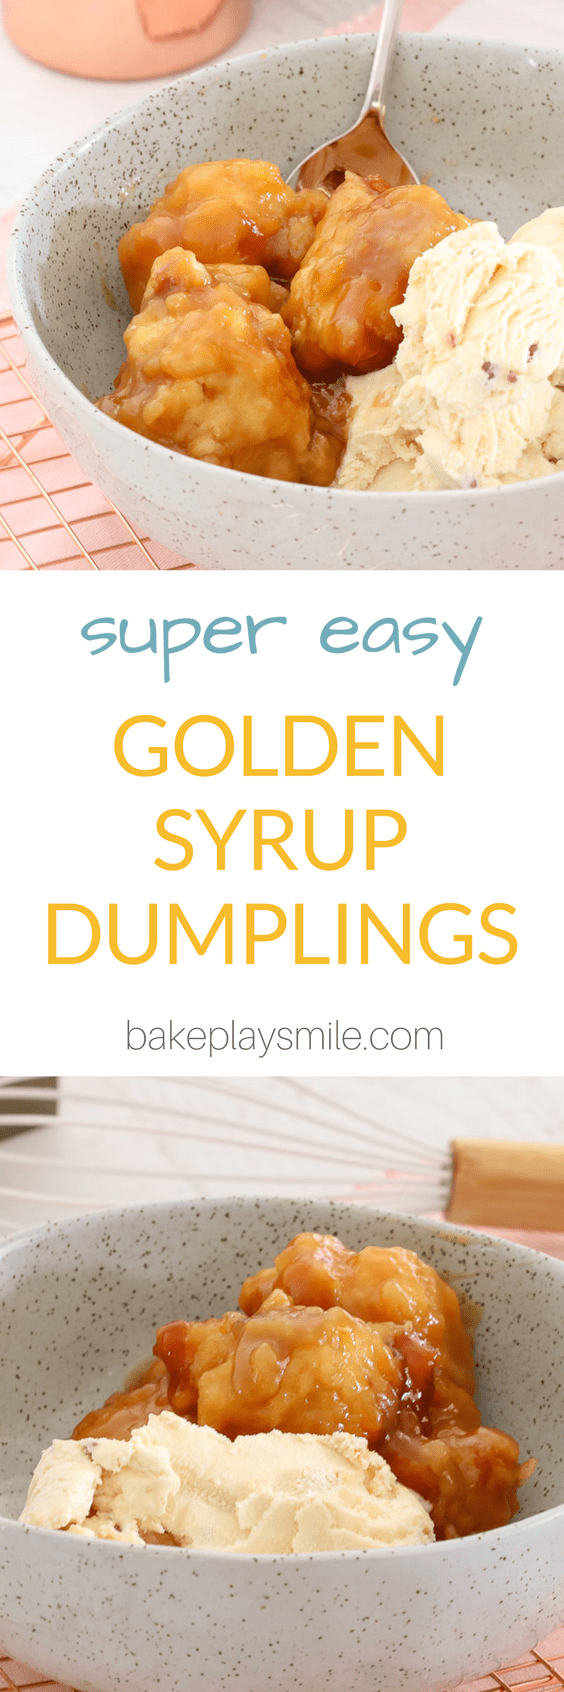 These super easy golden syrup dumplings are sure to become a family favourite! Serve hot with a big scoop of ice-cream for the perfect dessert.